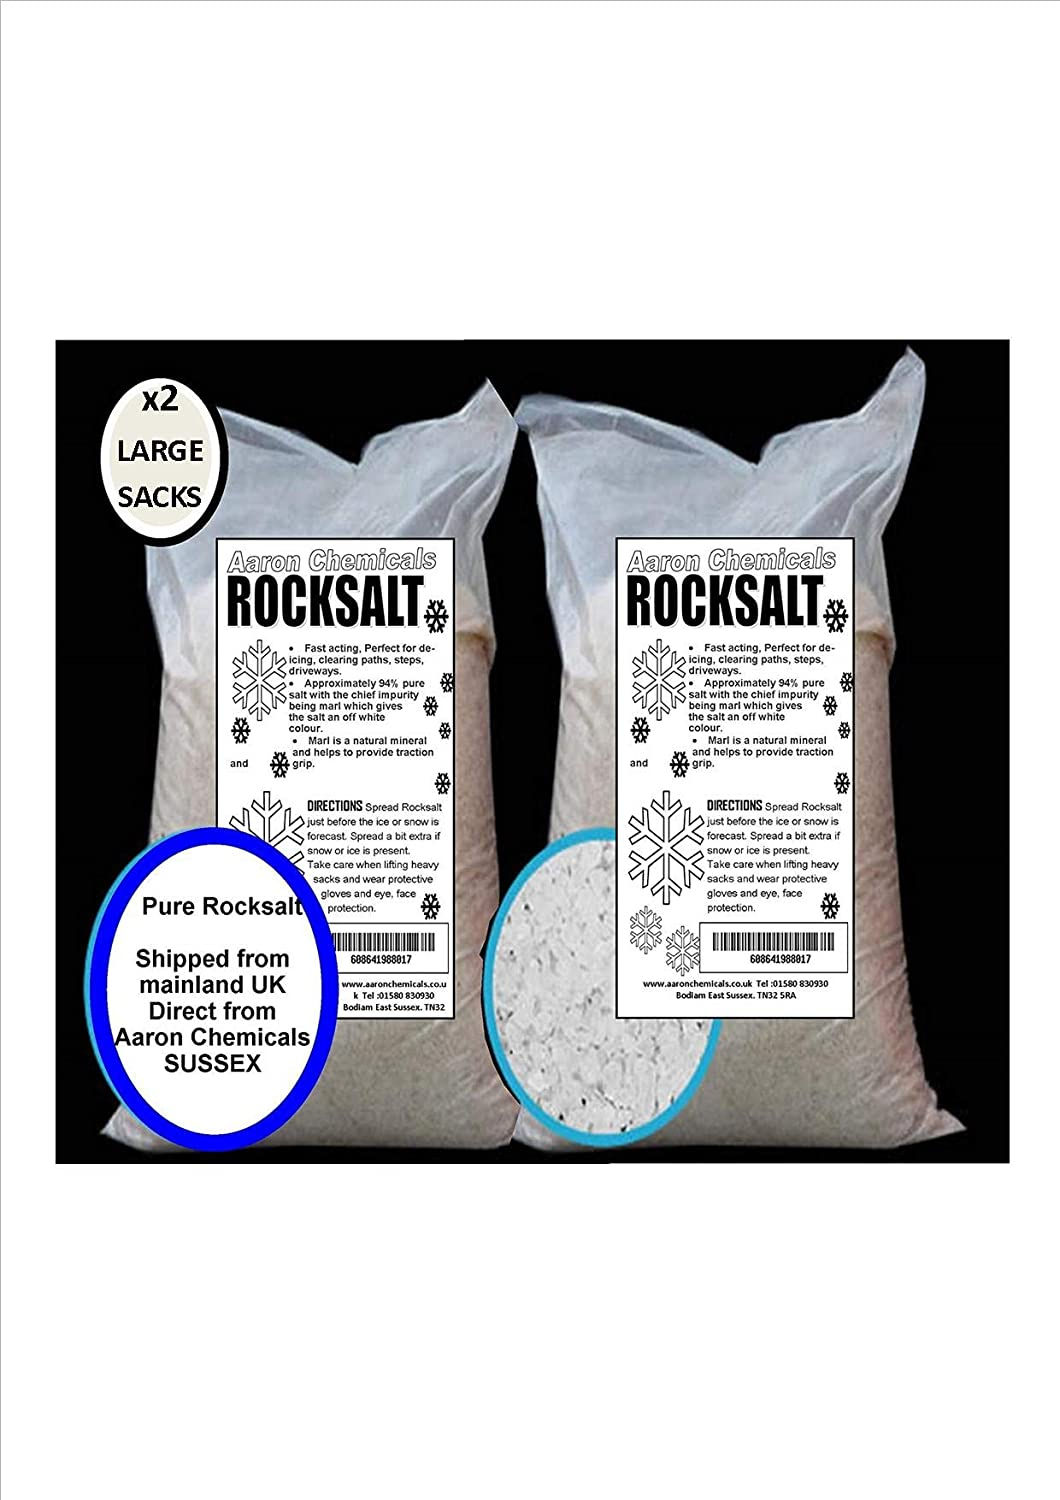 4806e8d8841 Rock Salt WHITE 2 x 25kg by Aaron Chemicals HIGH QUALITY deicing rock salt  NEXT-DAY DELIVERY OPTION £3 !! (Clears Snow and lce from Driveways and  Paths)